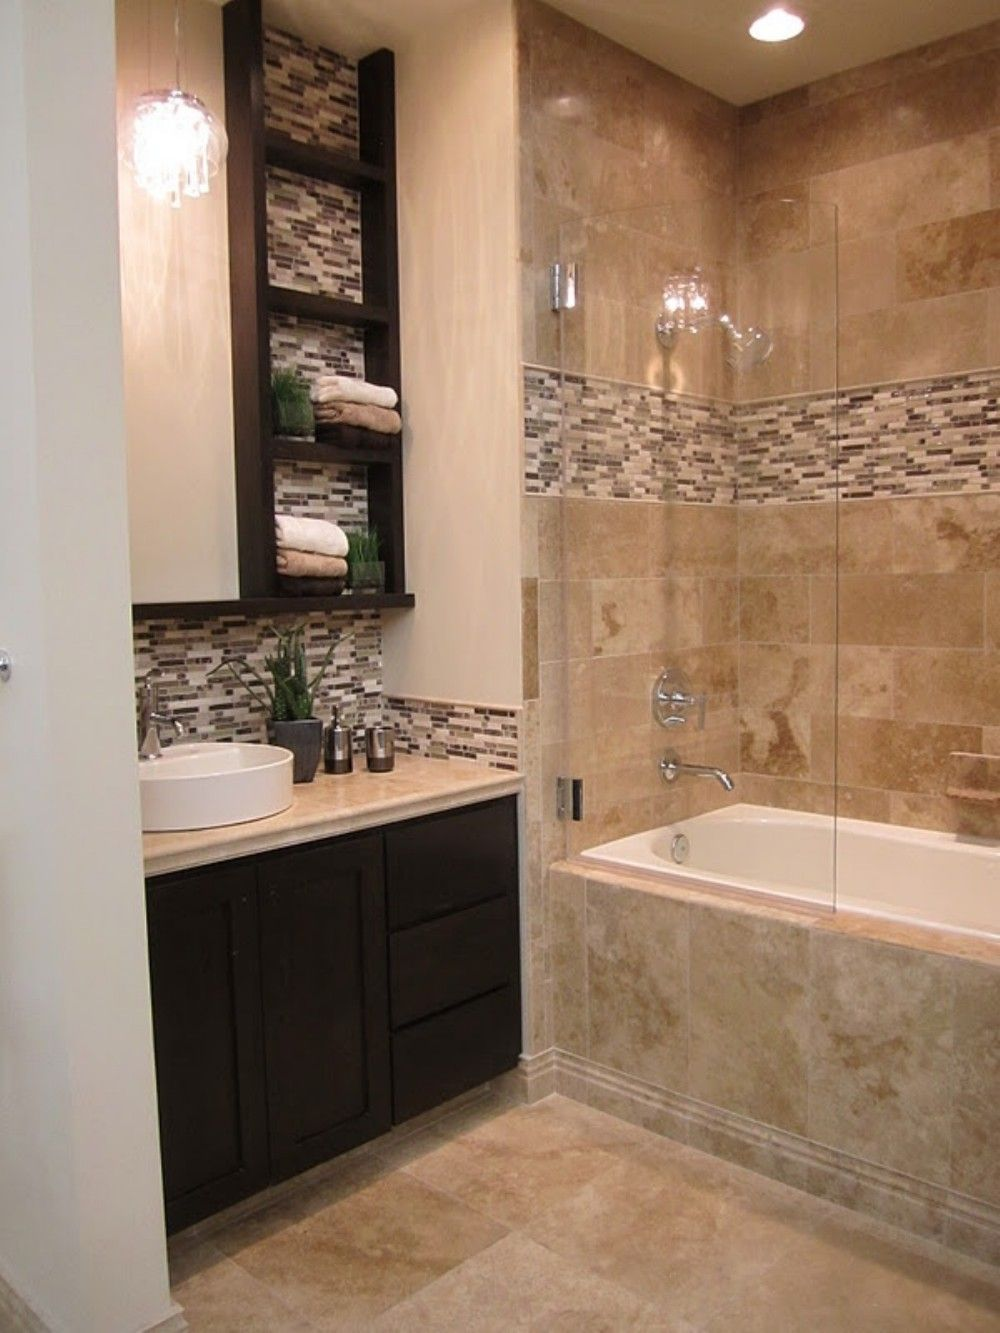 Cool cozy small bathroom shower with tub tile design ideas for Cool bathroom remodel ideas